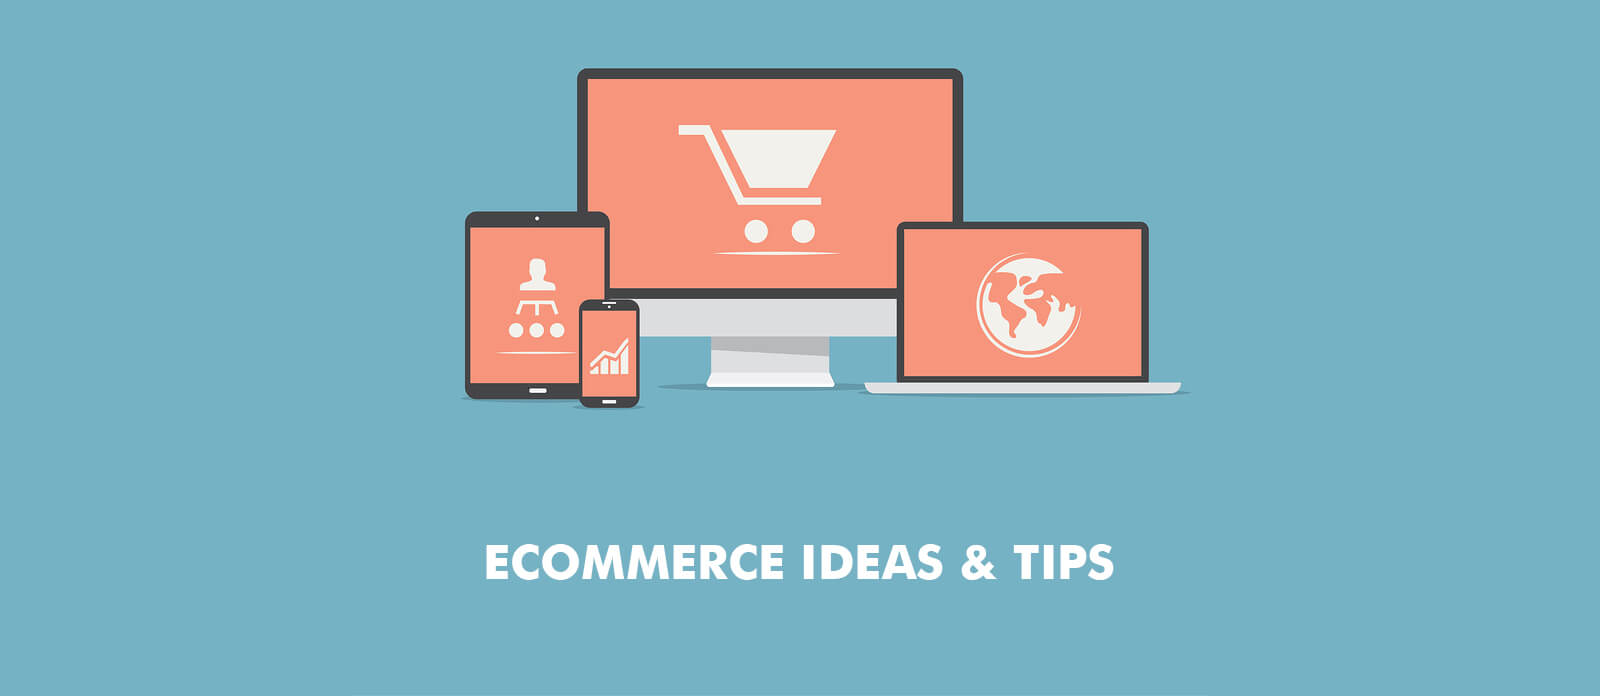 Small ecommerce businesses strategies, ideas & tips.